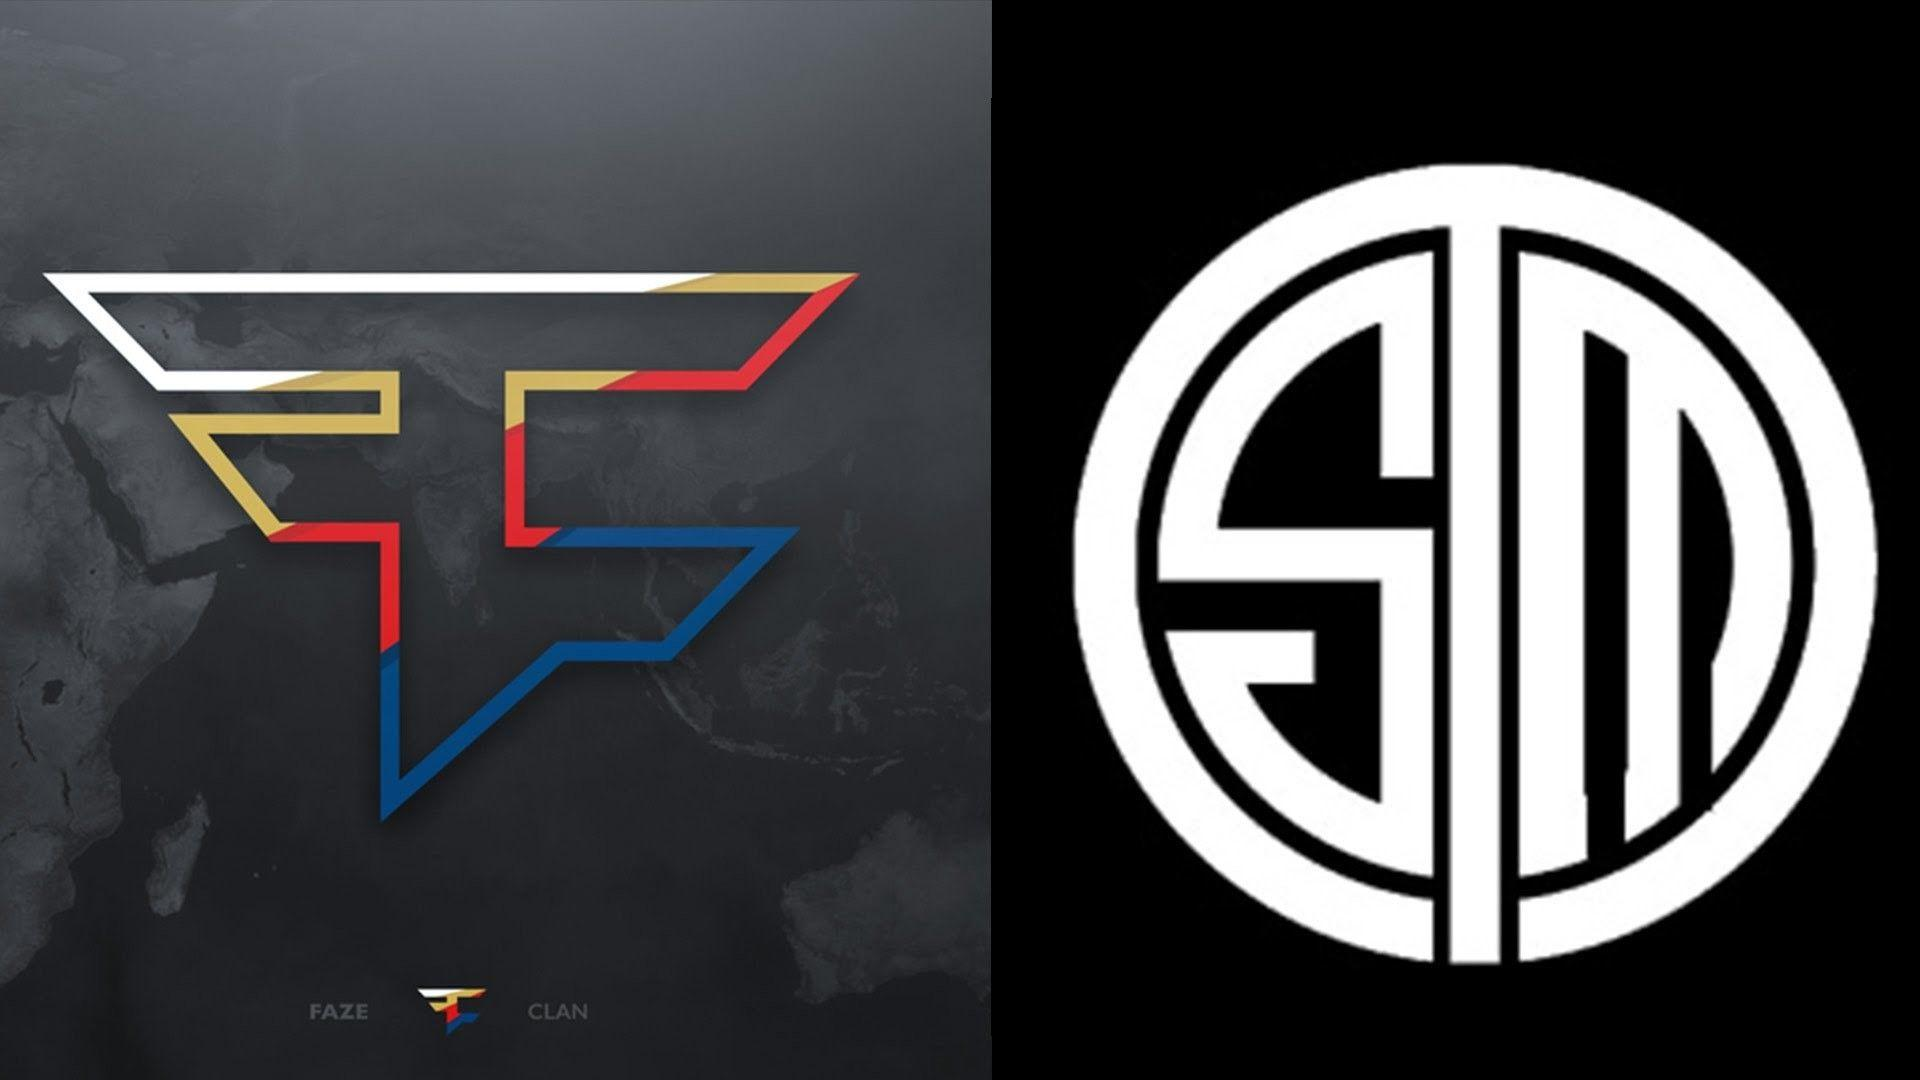 Faze Teeqo Logo Wallpapers ✓ Best Wallpapers